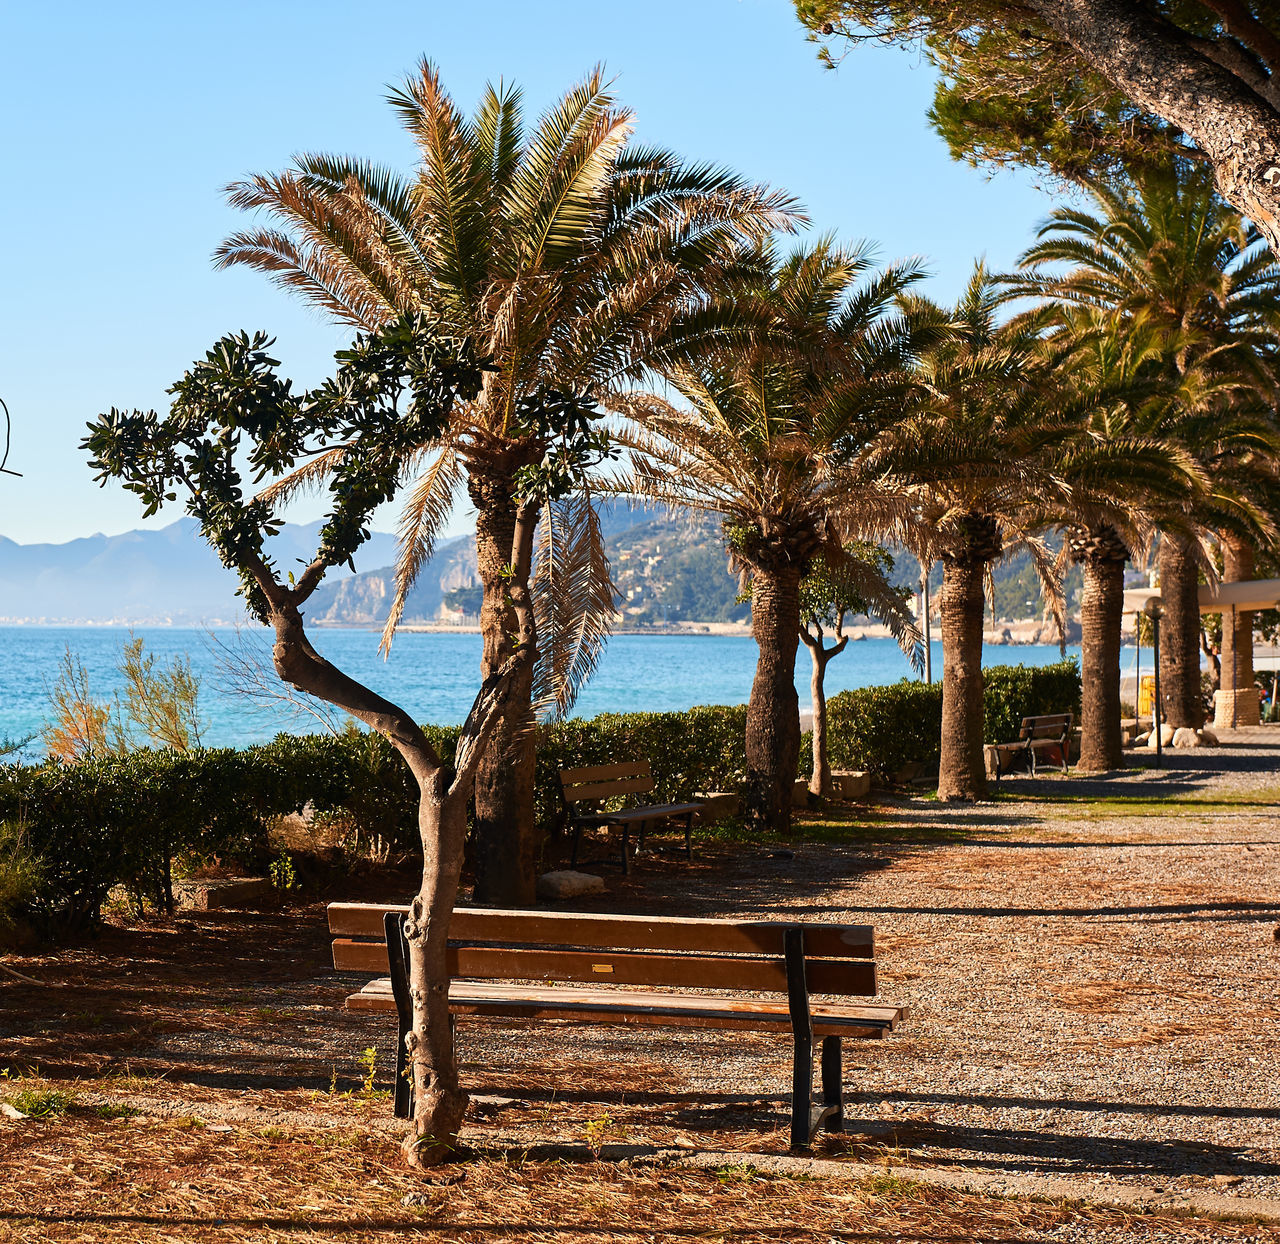 Palm-trees lined seaside of Italian Riviera at winter Bench Blue Sky Coastal Coastline Empty Europe Italian Riviera Italy Landscape Liguria,Italy Ligurian Riviera Mediterranean Sea Nature Nobody Outdoors Palm Trees Park Seashore Seaside Sunny Day Tourist Resort Travel Destinations Walkway Waterfront